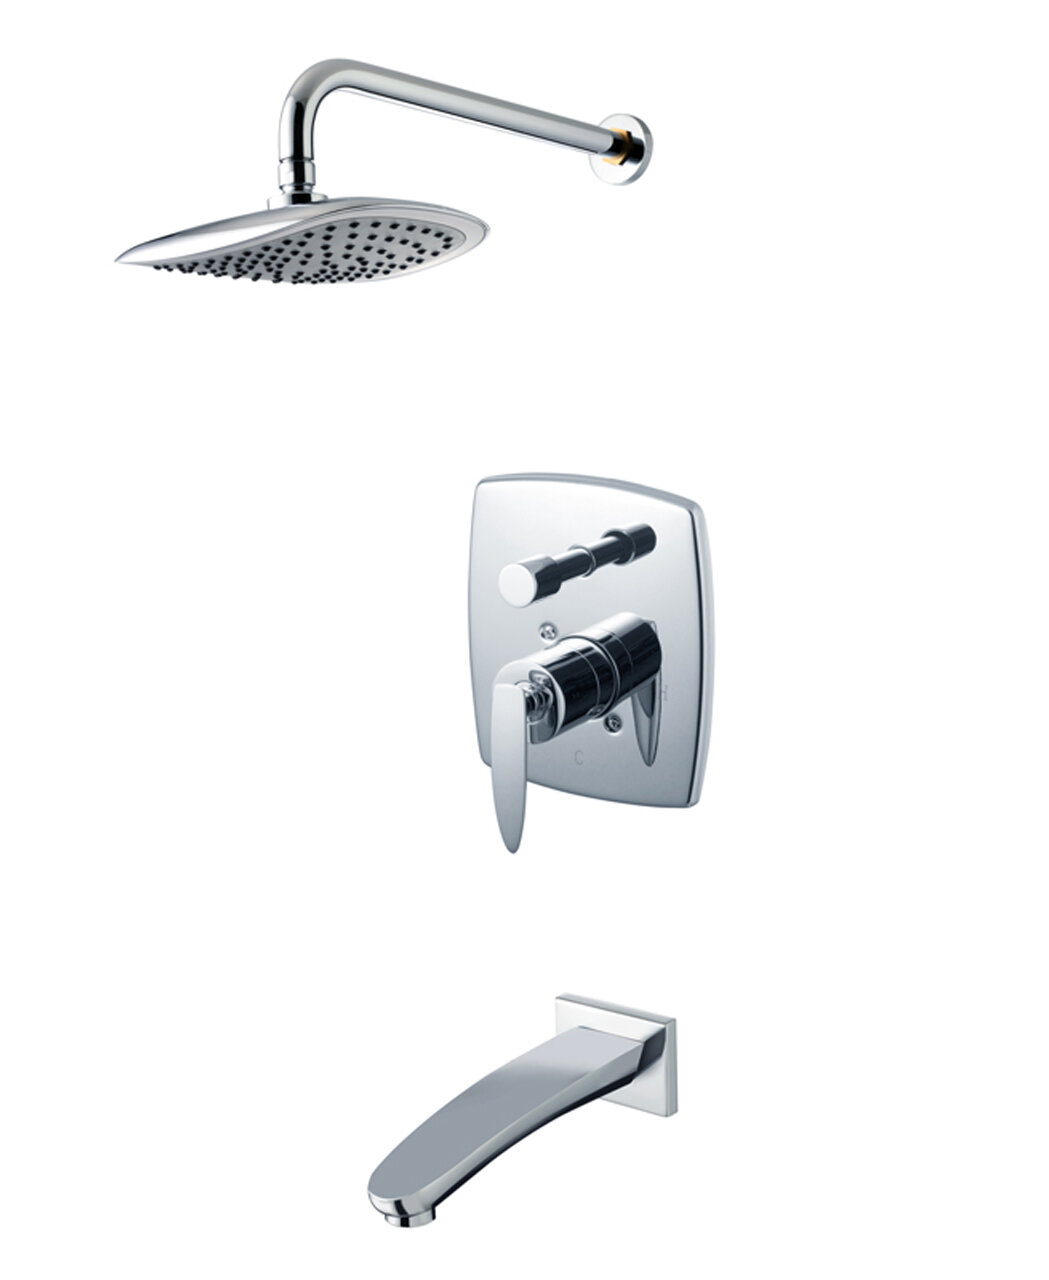 Eden Diverter Dual Function Volume Control Tub And Shower Faucet With Valve And Trim